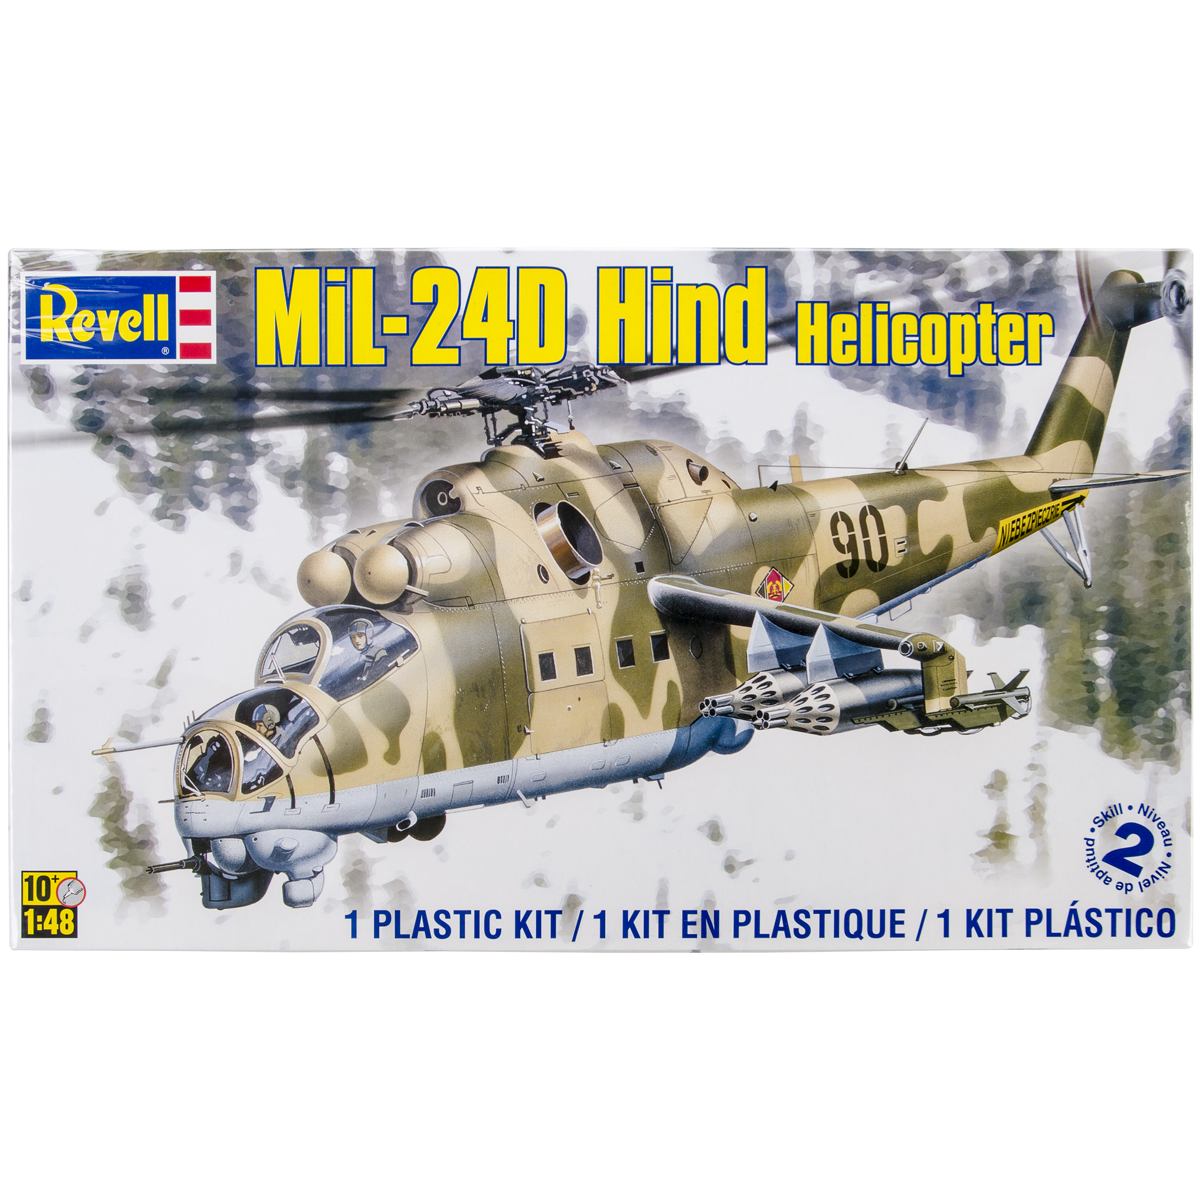 Plastic Model KitMil24 Hind Helicopter 1:48 by Revell